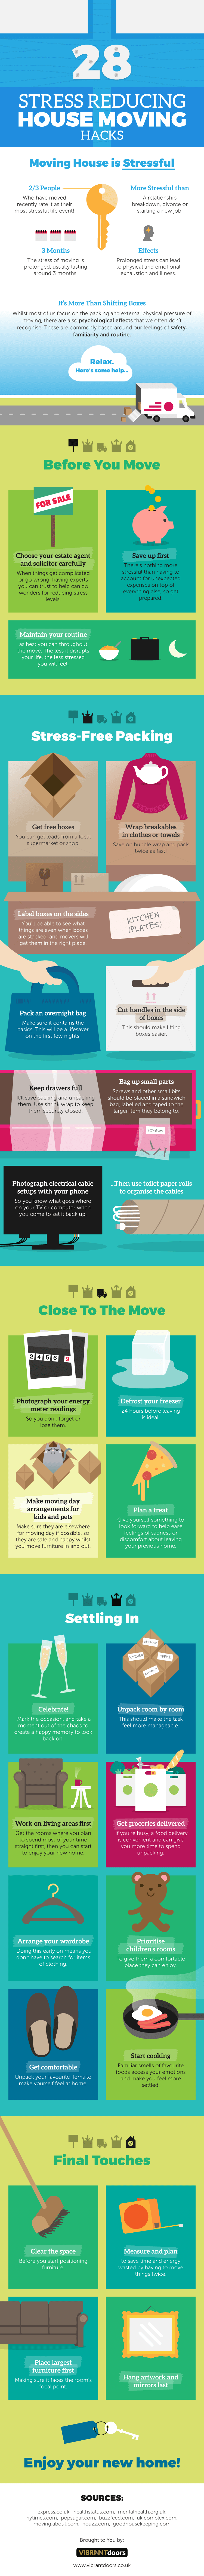 stress reducing house moving hacks